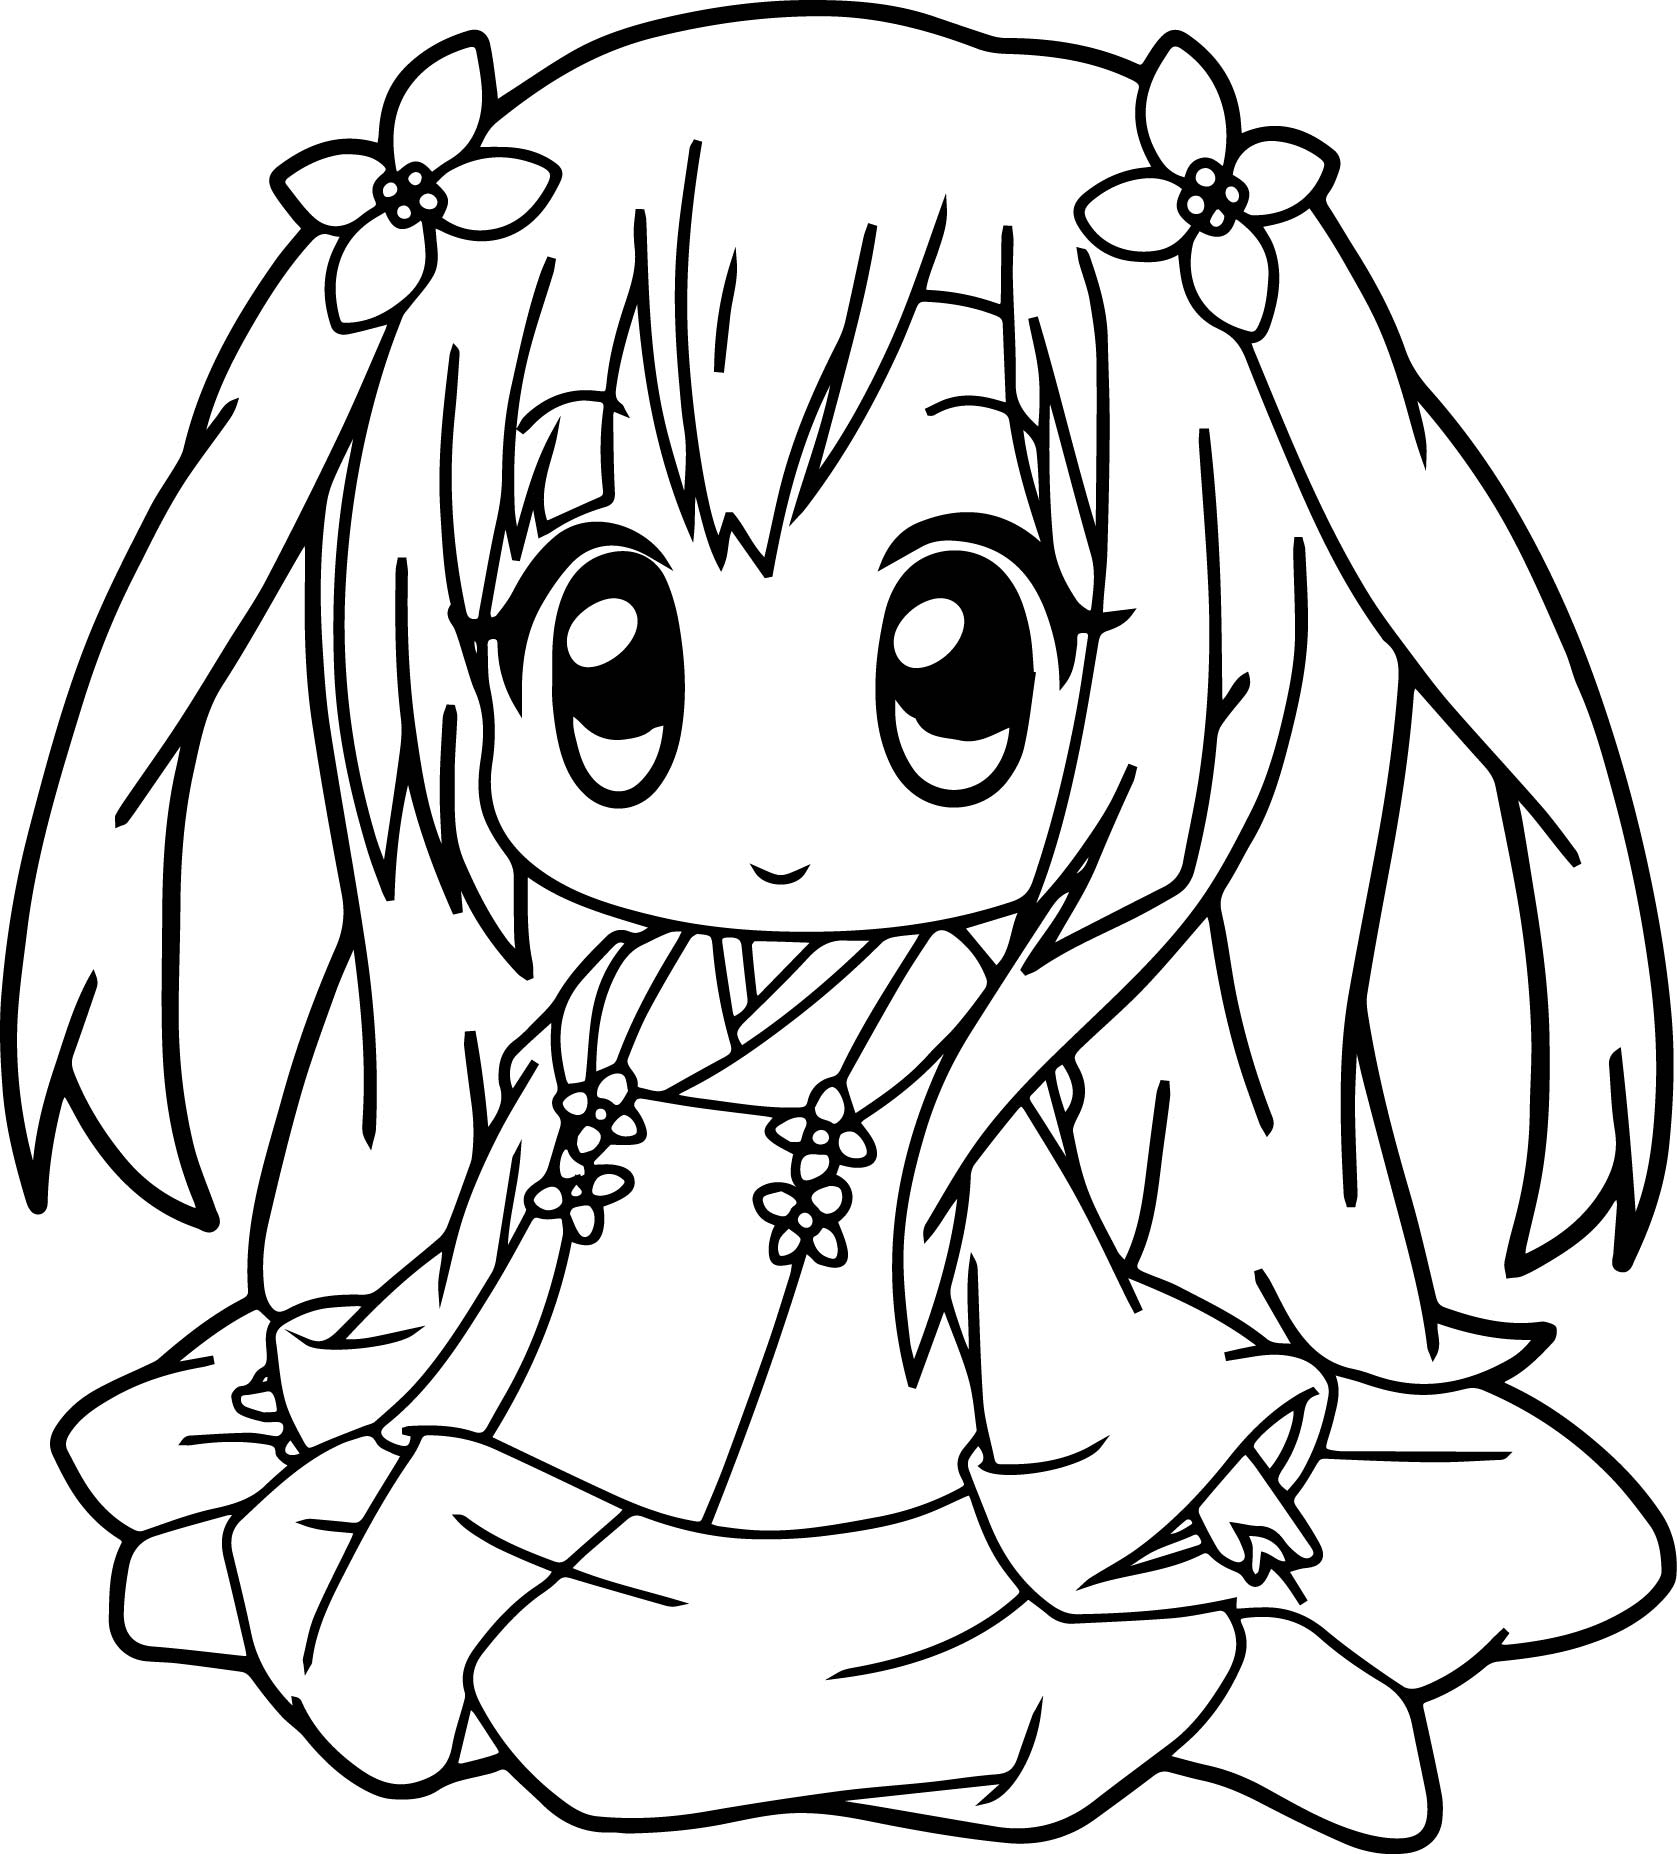 very cute anime girl coloring page